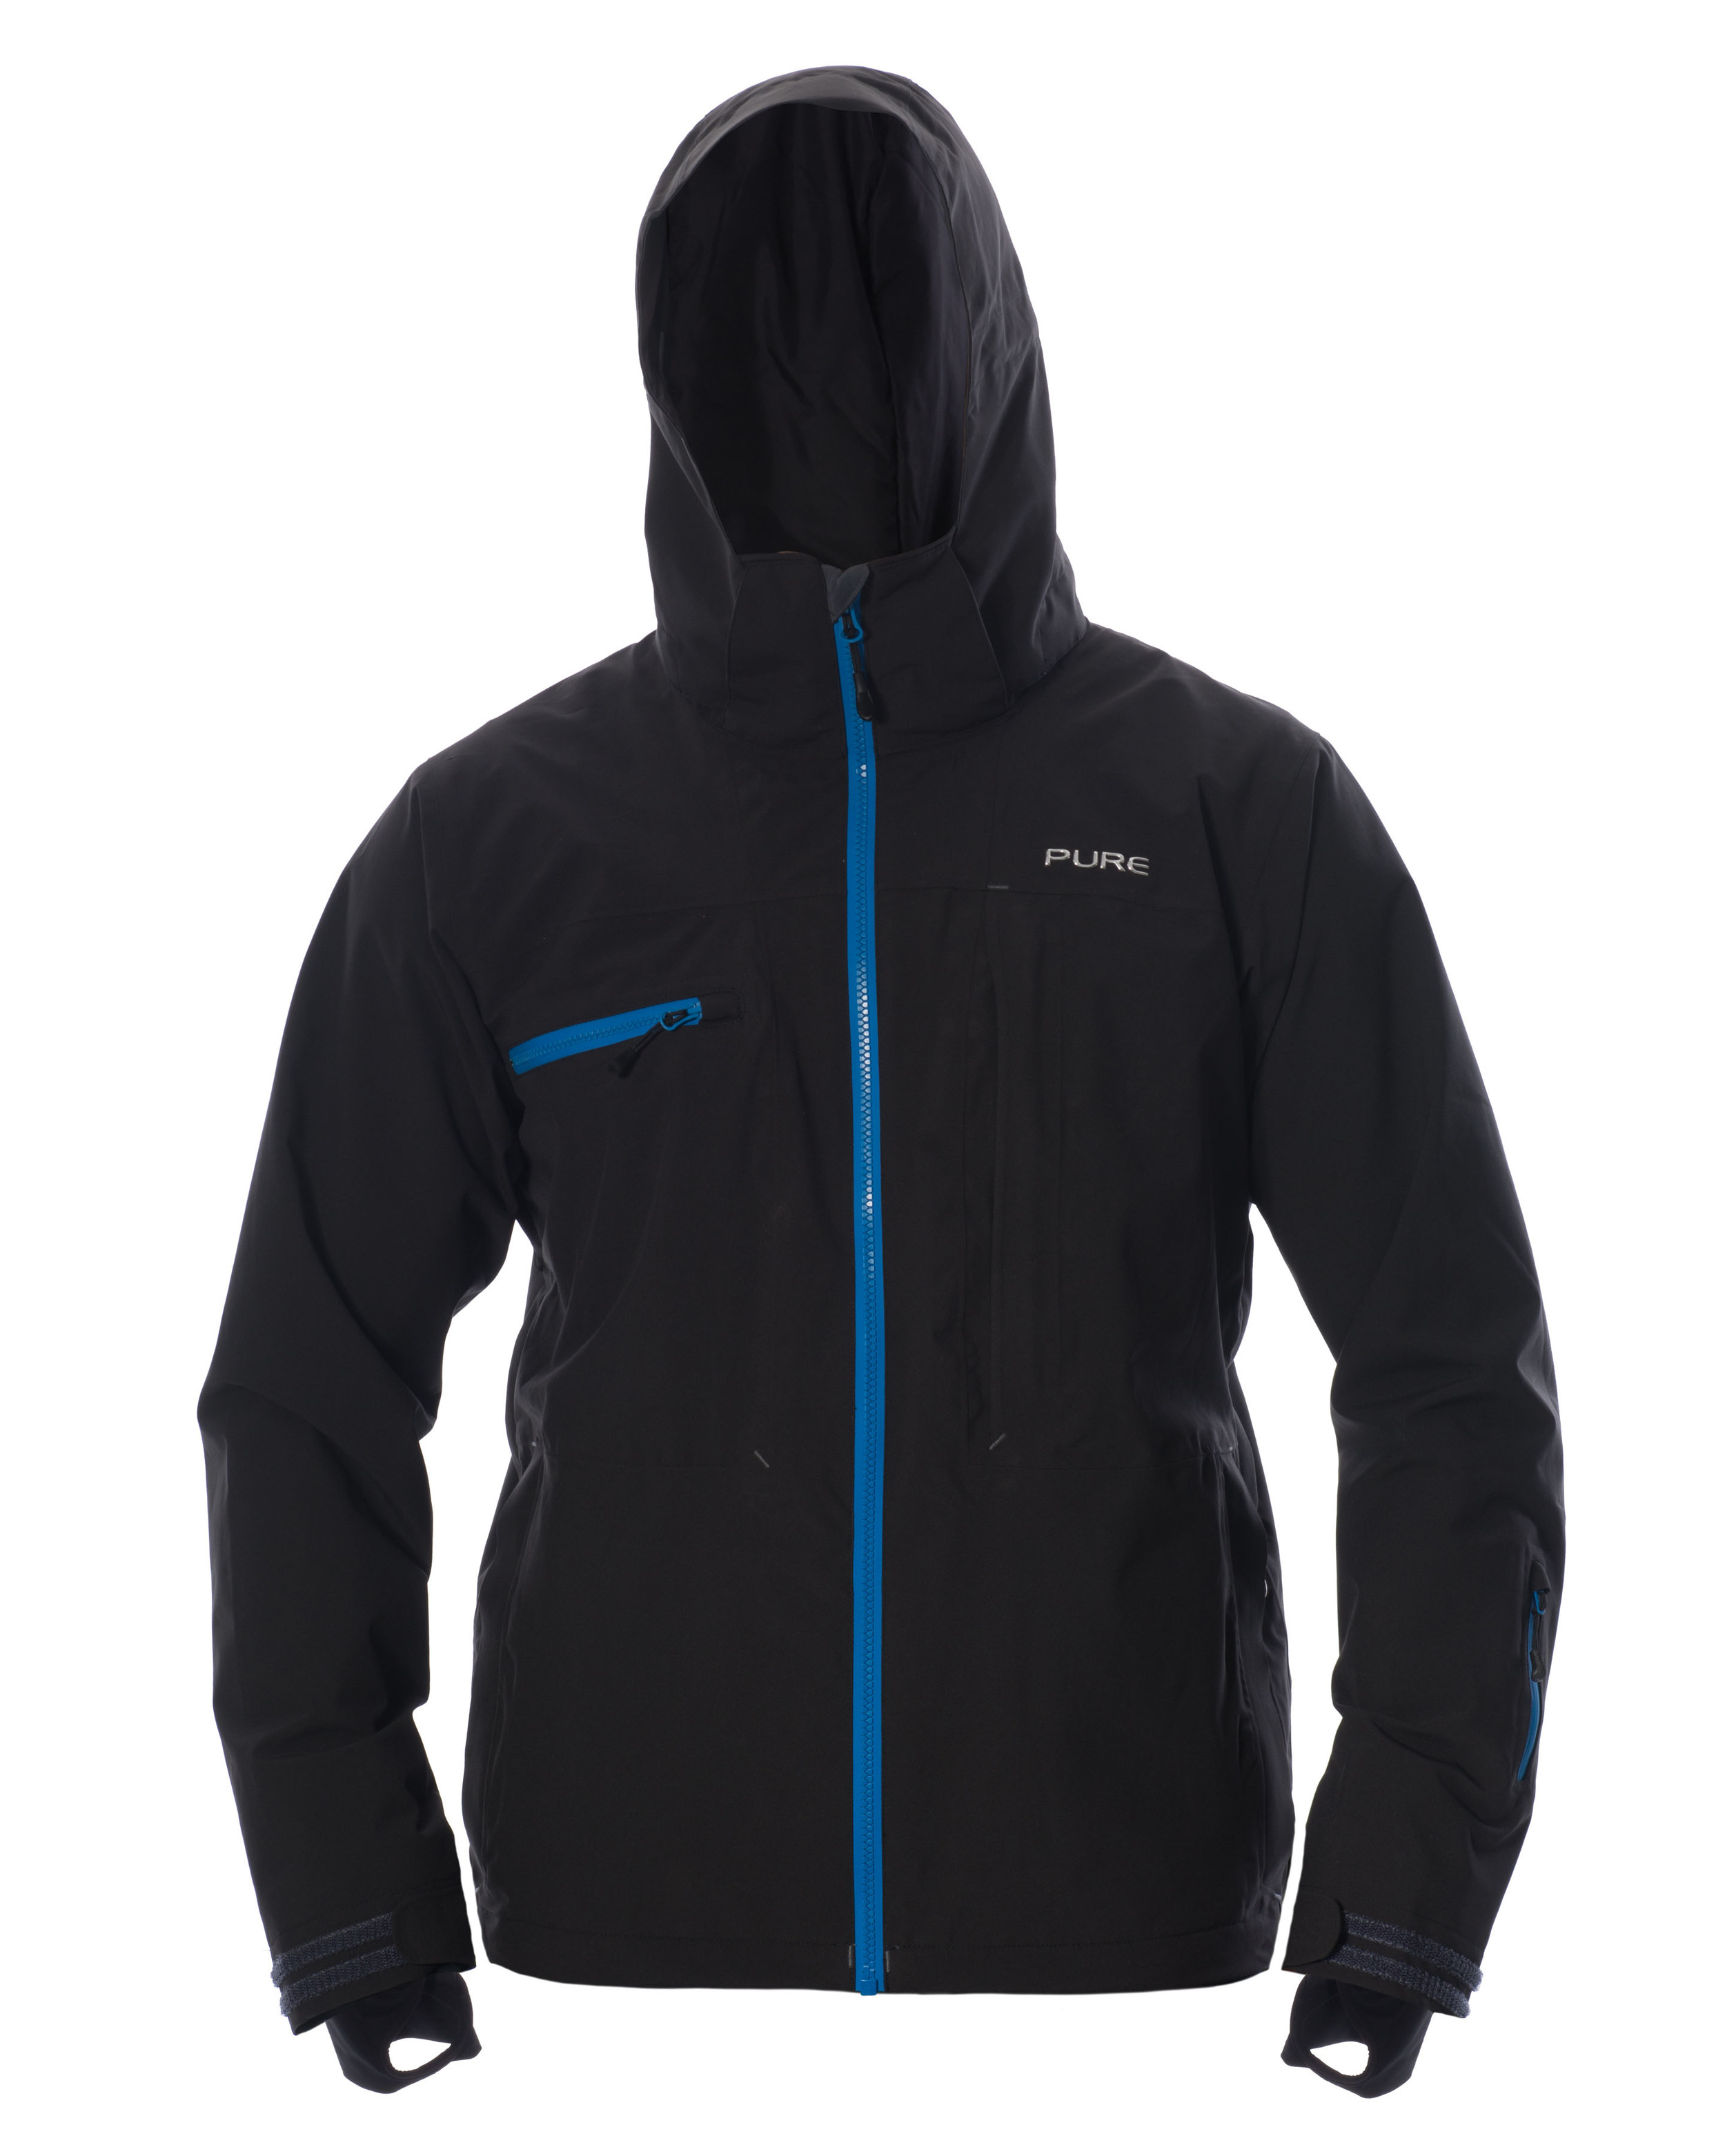 Kilimanjaro Men's Pure Mountain - Black